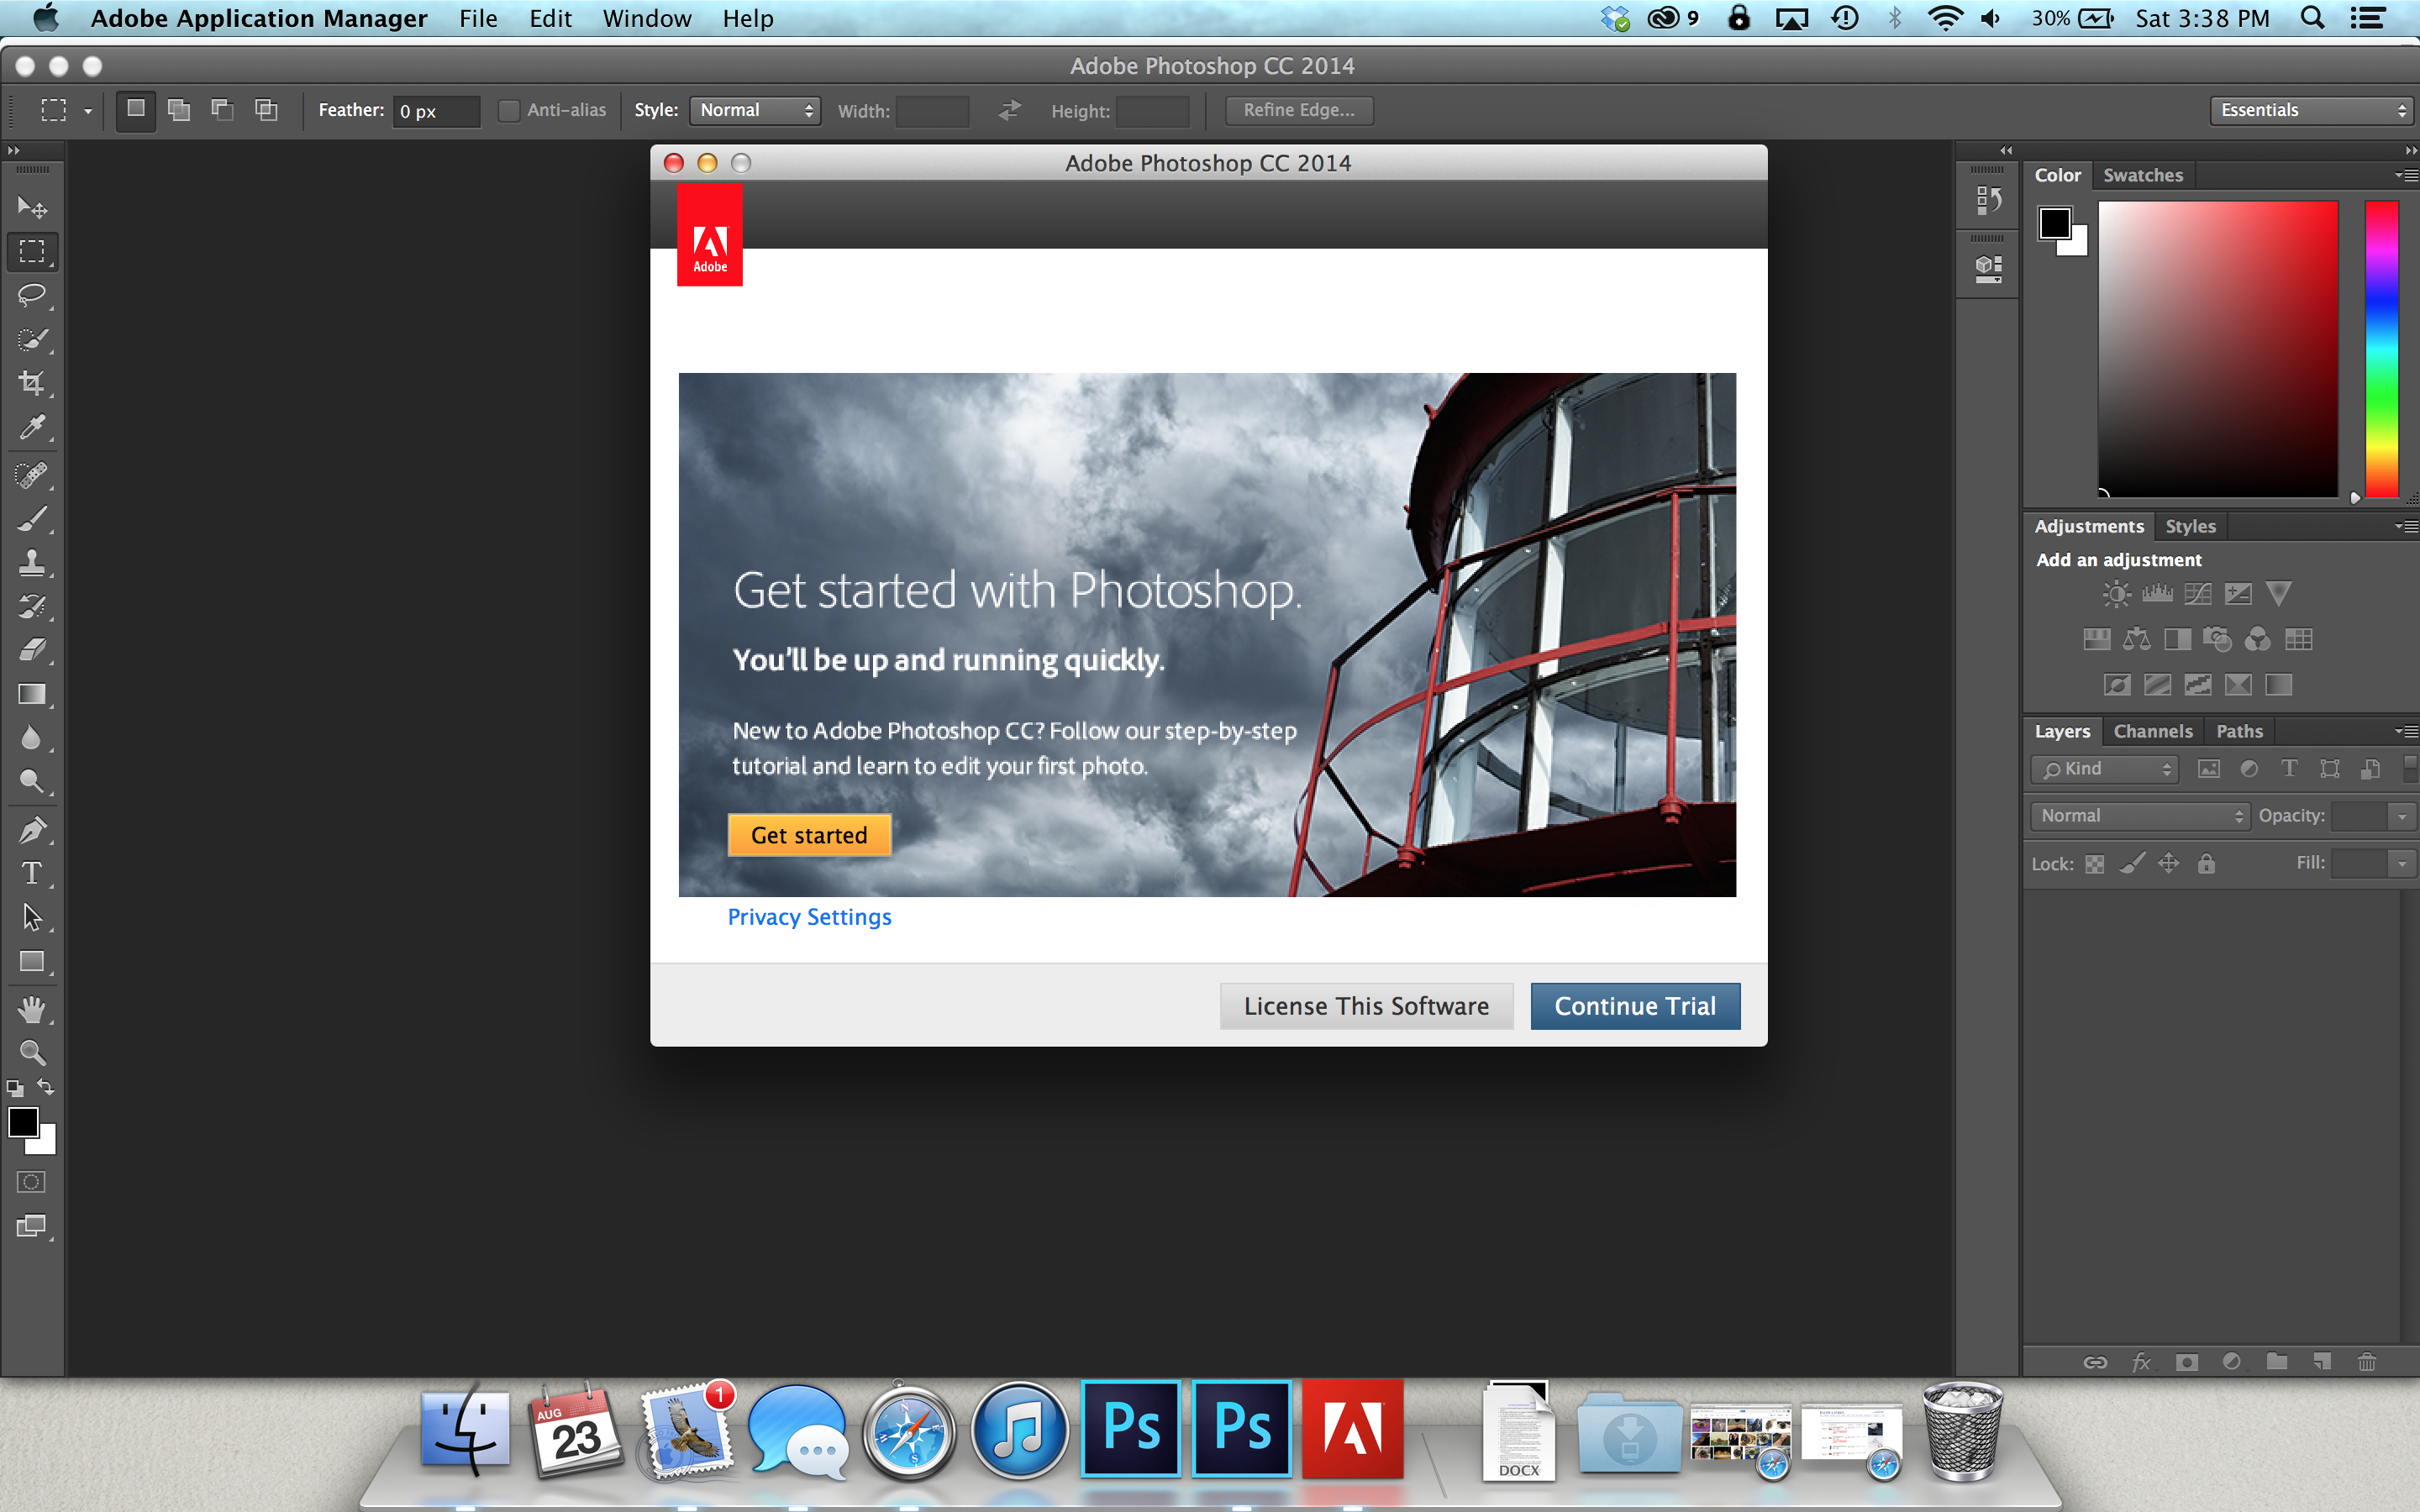 Photoshop Cc 2014 Asking For Serial Number Adobe Support